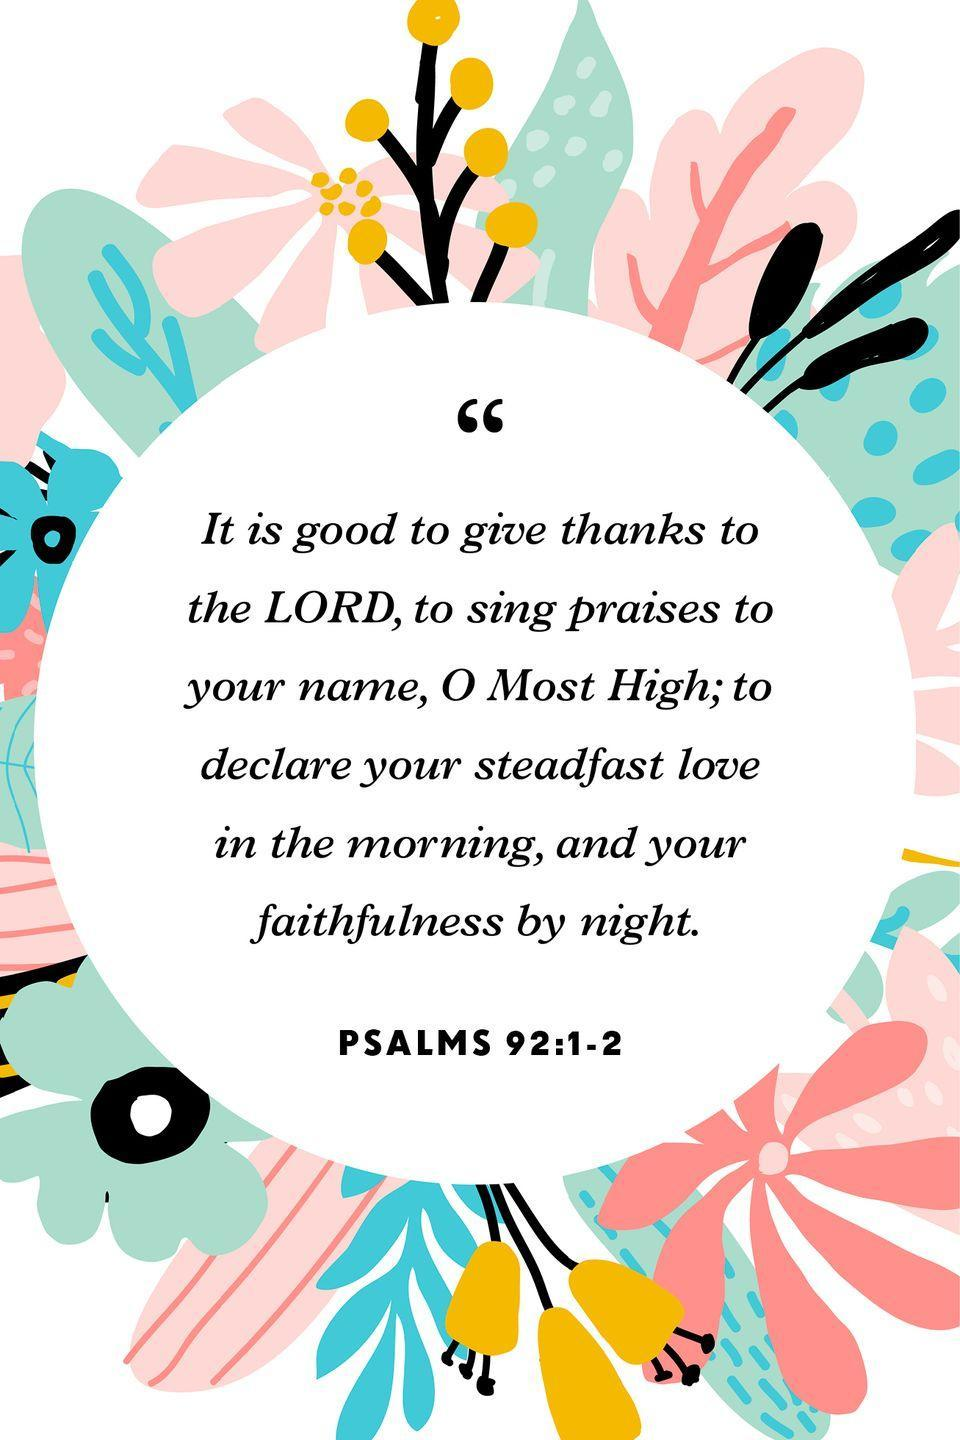 """<p>""""It is good to give thanks to the LORD,<br>to sing praises to your name, O Most High;<br>to declare your steadfast love in the morning,<br>and your faithfulness by night.""""</p>"""